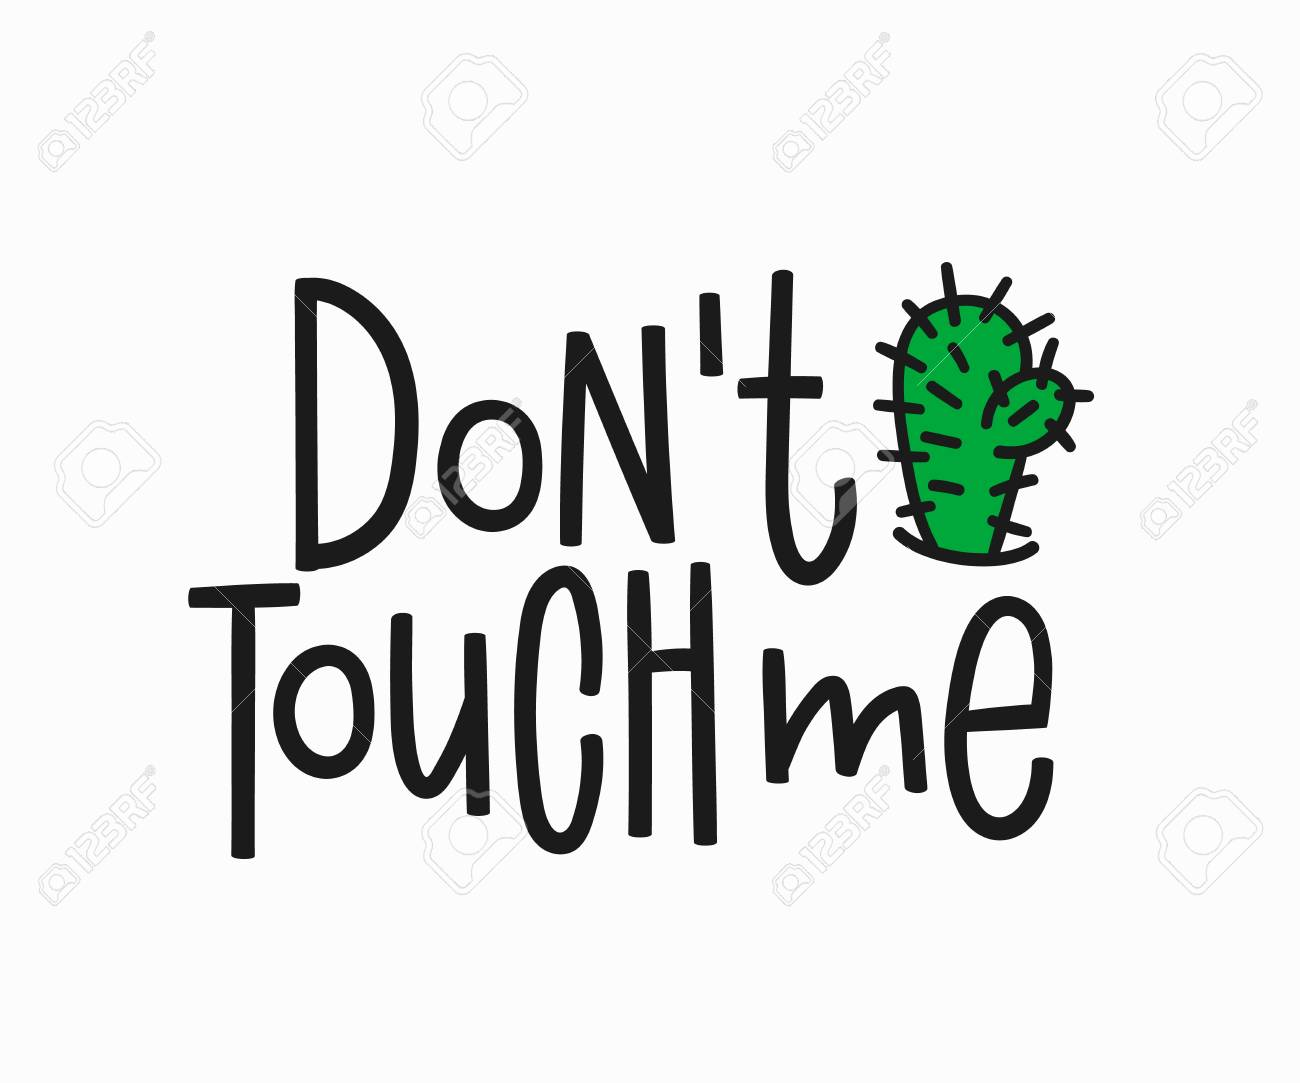 Dont touch me t-shirt quote feminist lettering. Calligraphy inspiration graphic design typography element. Hand written card. Simple vector sign. Protest against patriarchy misogyny female - 90383404